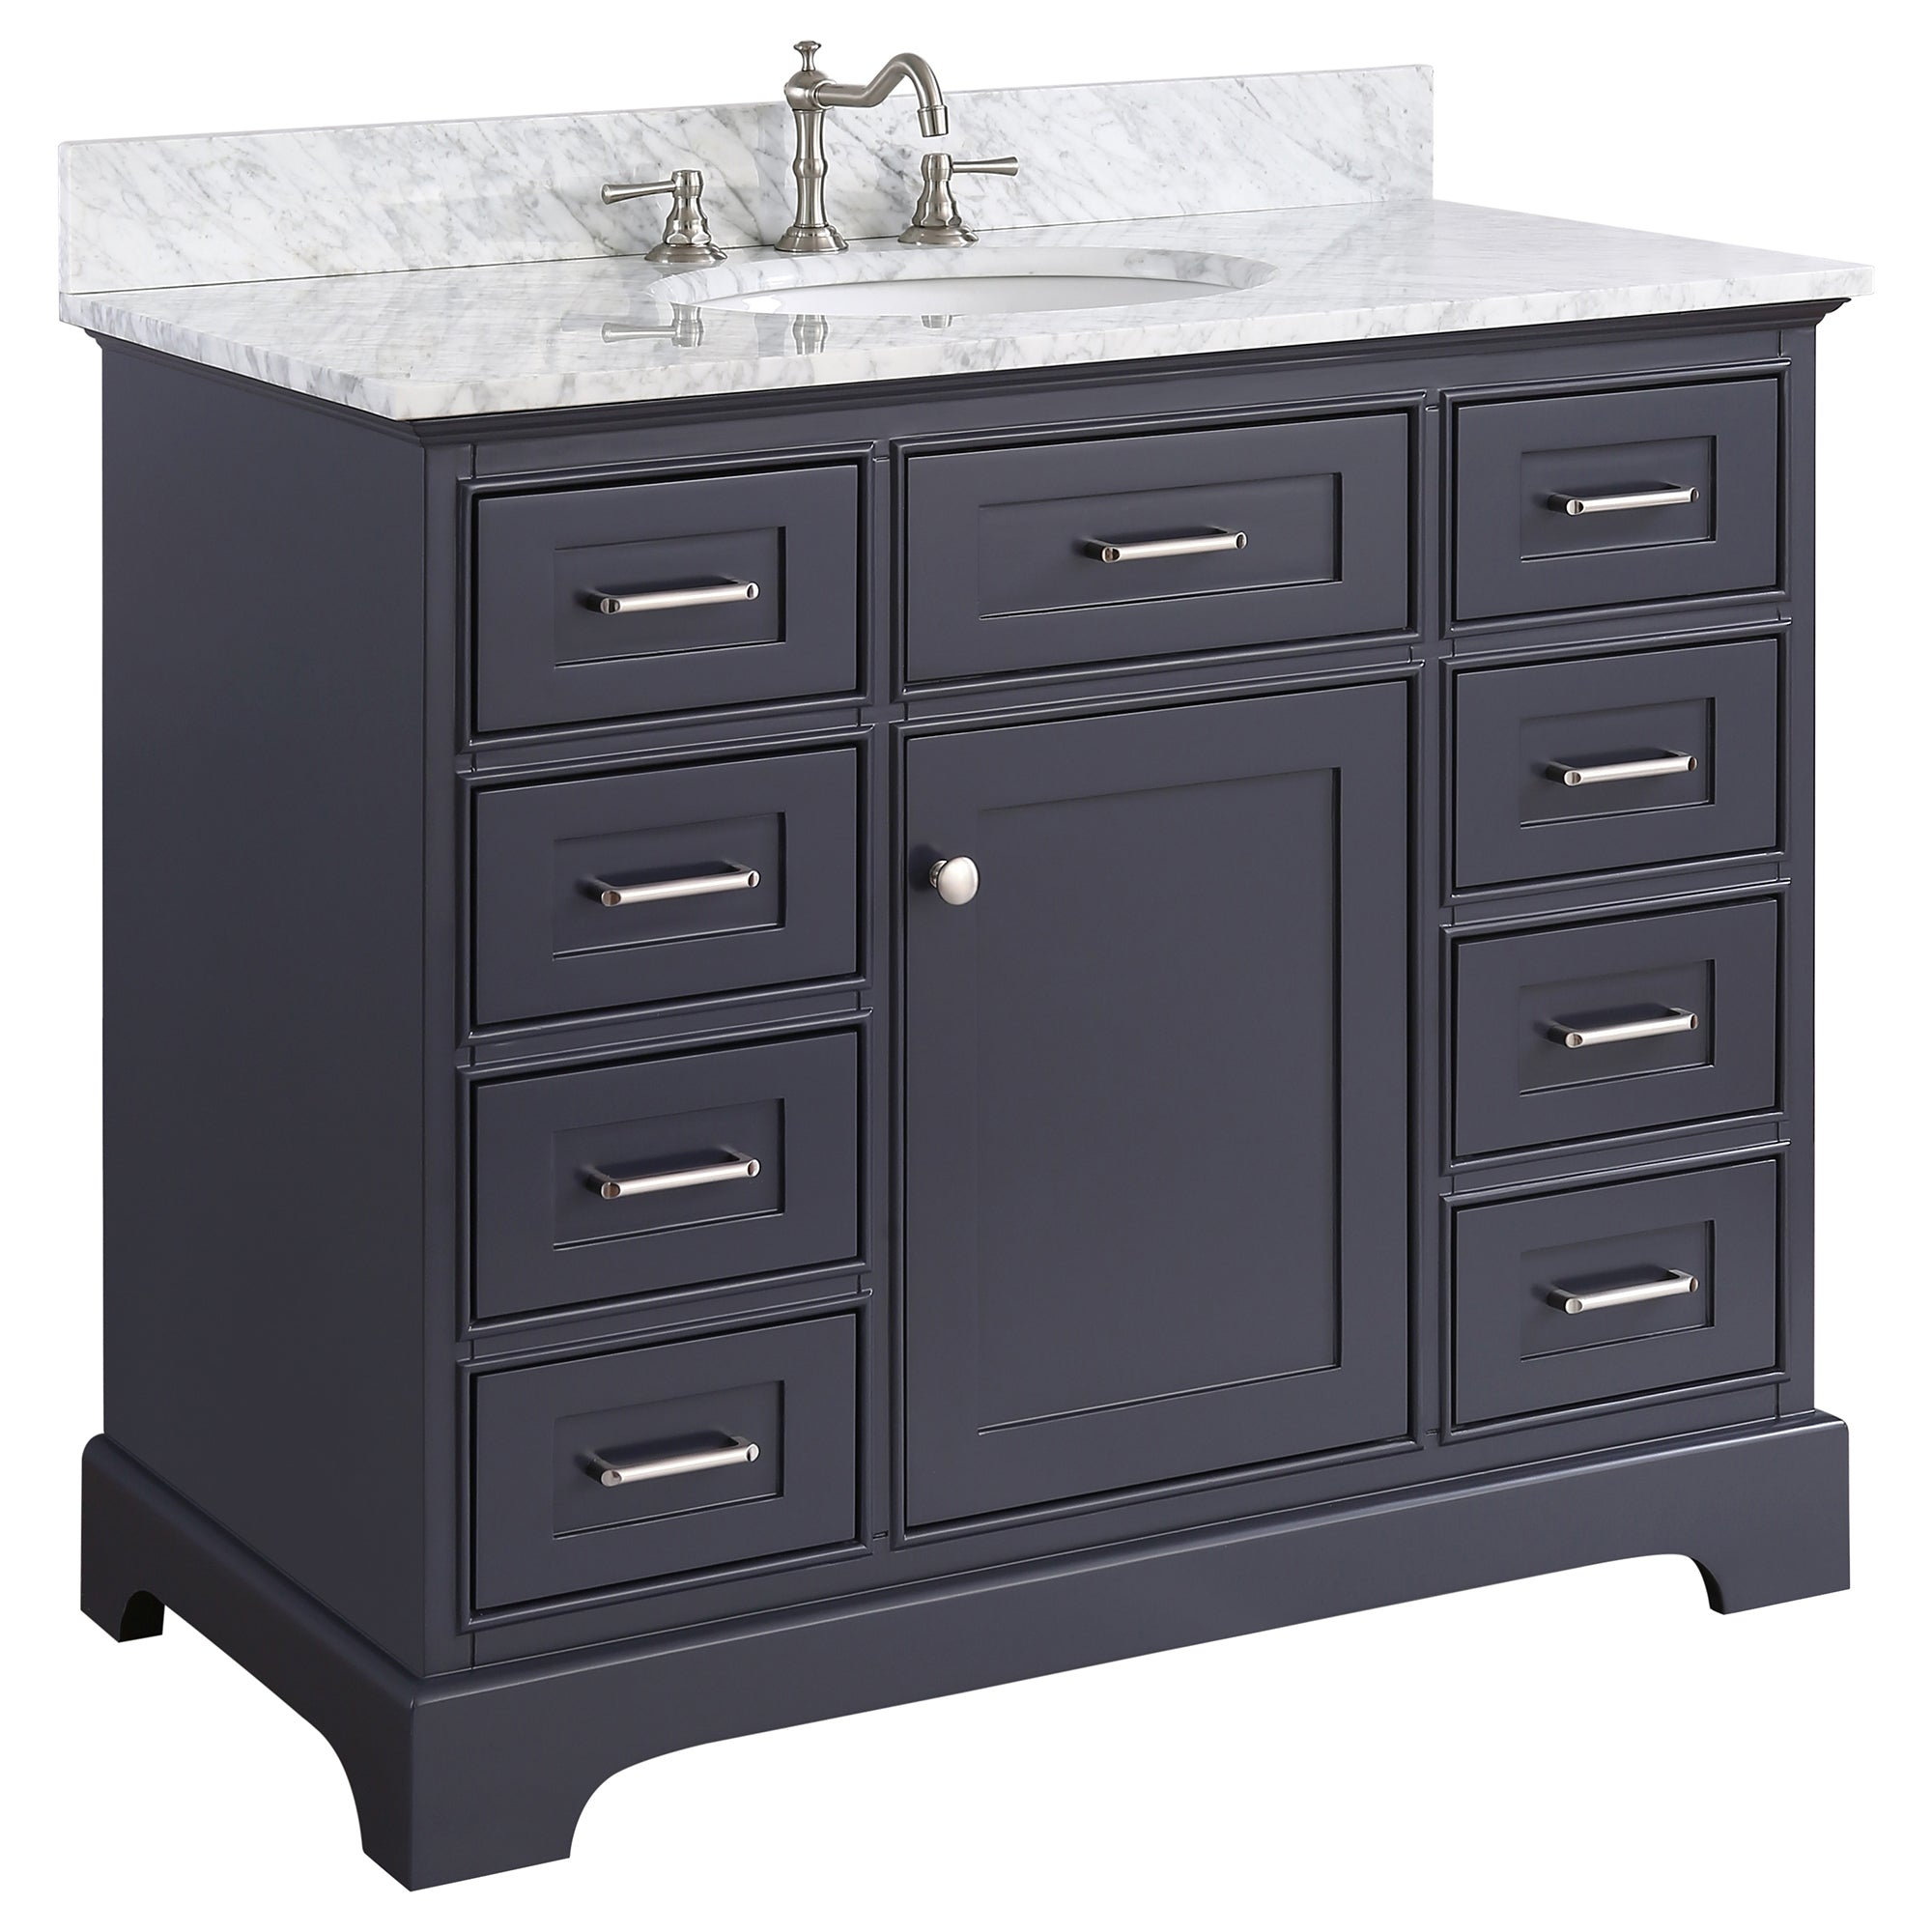 Superbe 42 Inch Solid Wood Bathroom Vanity Cabinet In Grey/charcoal